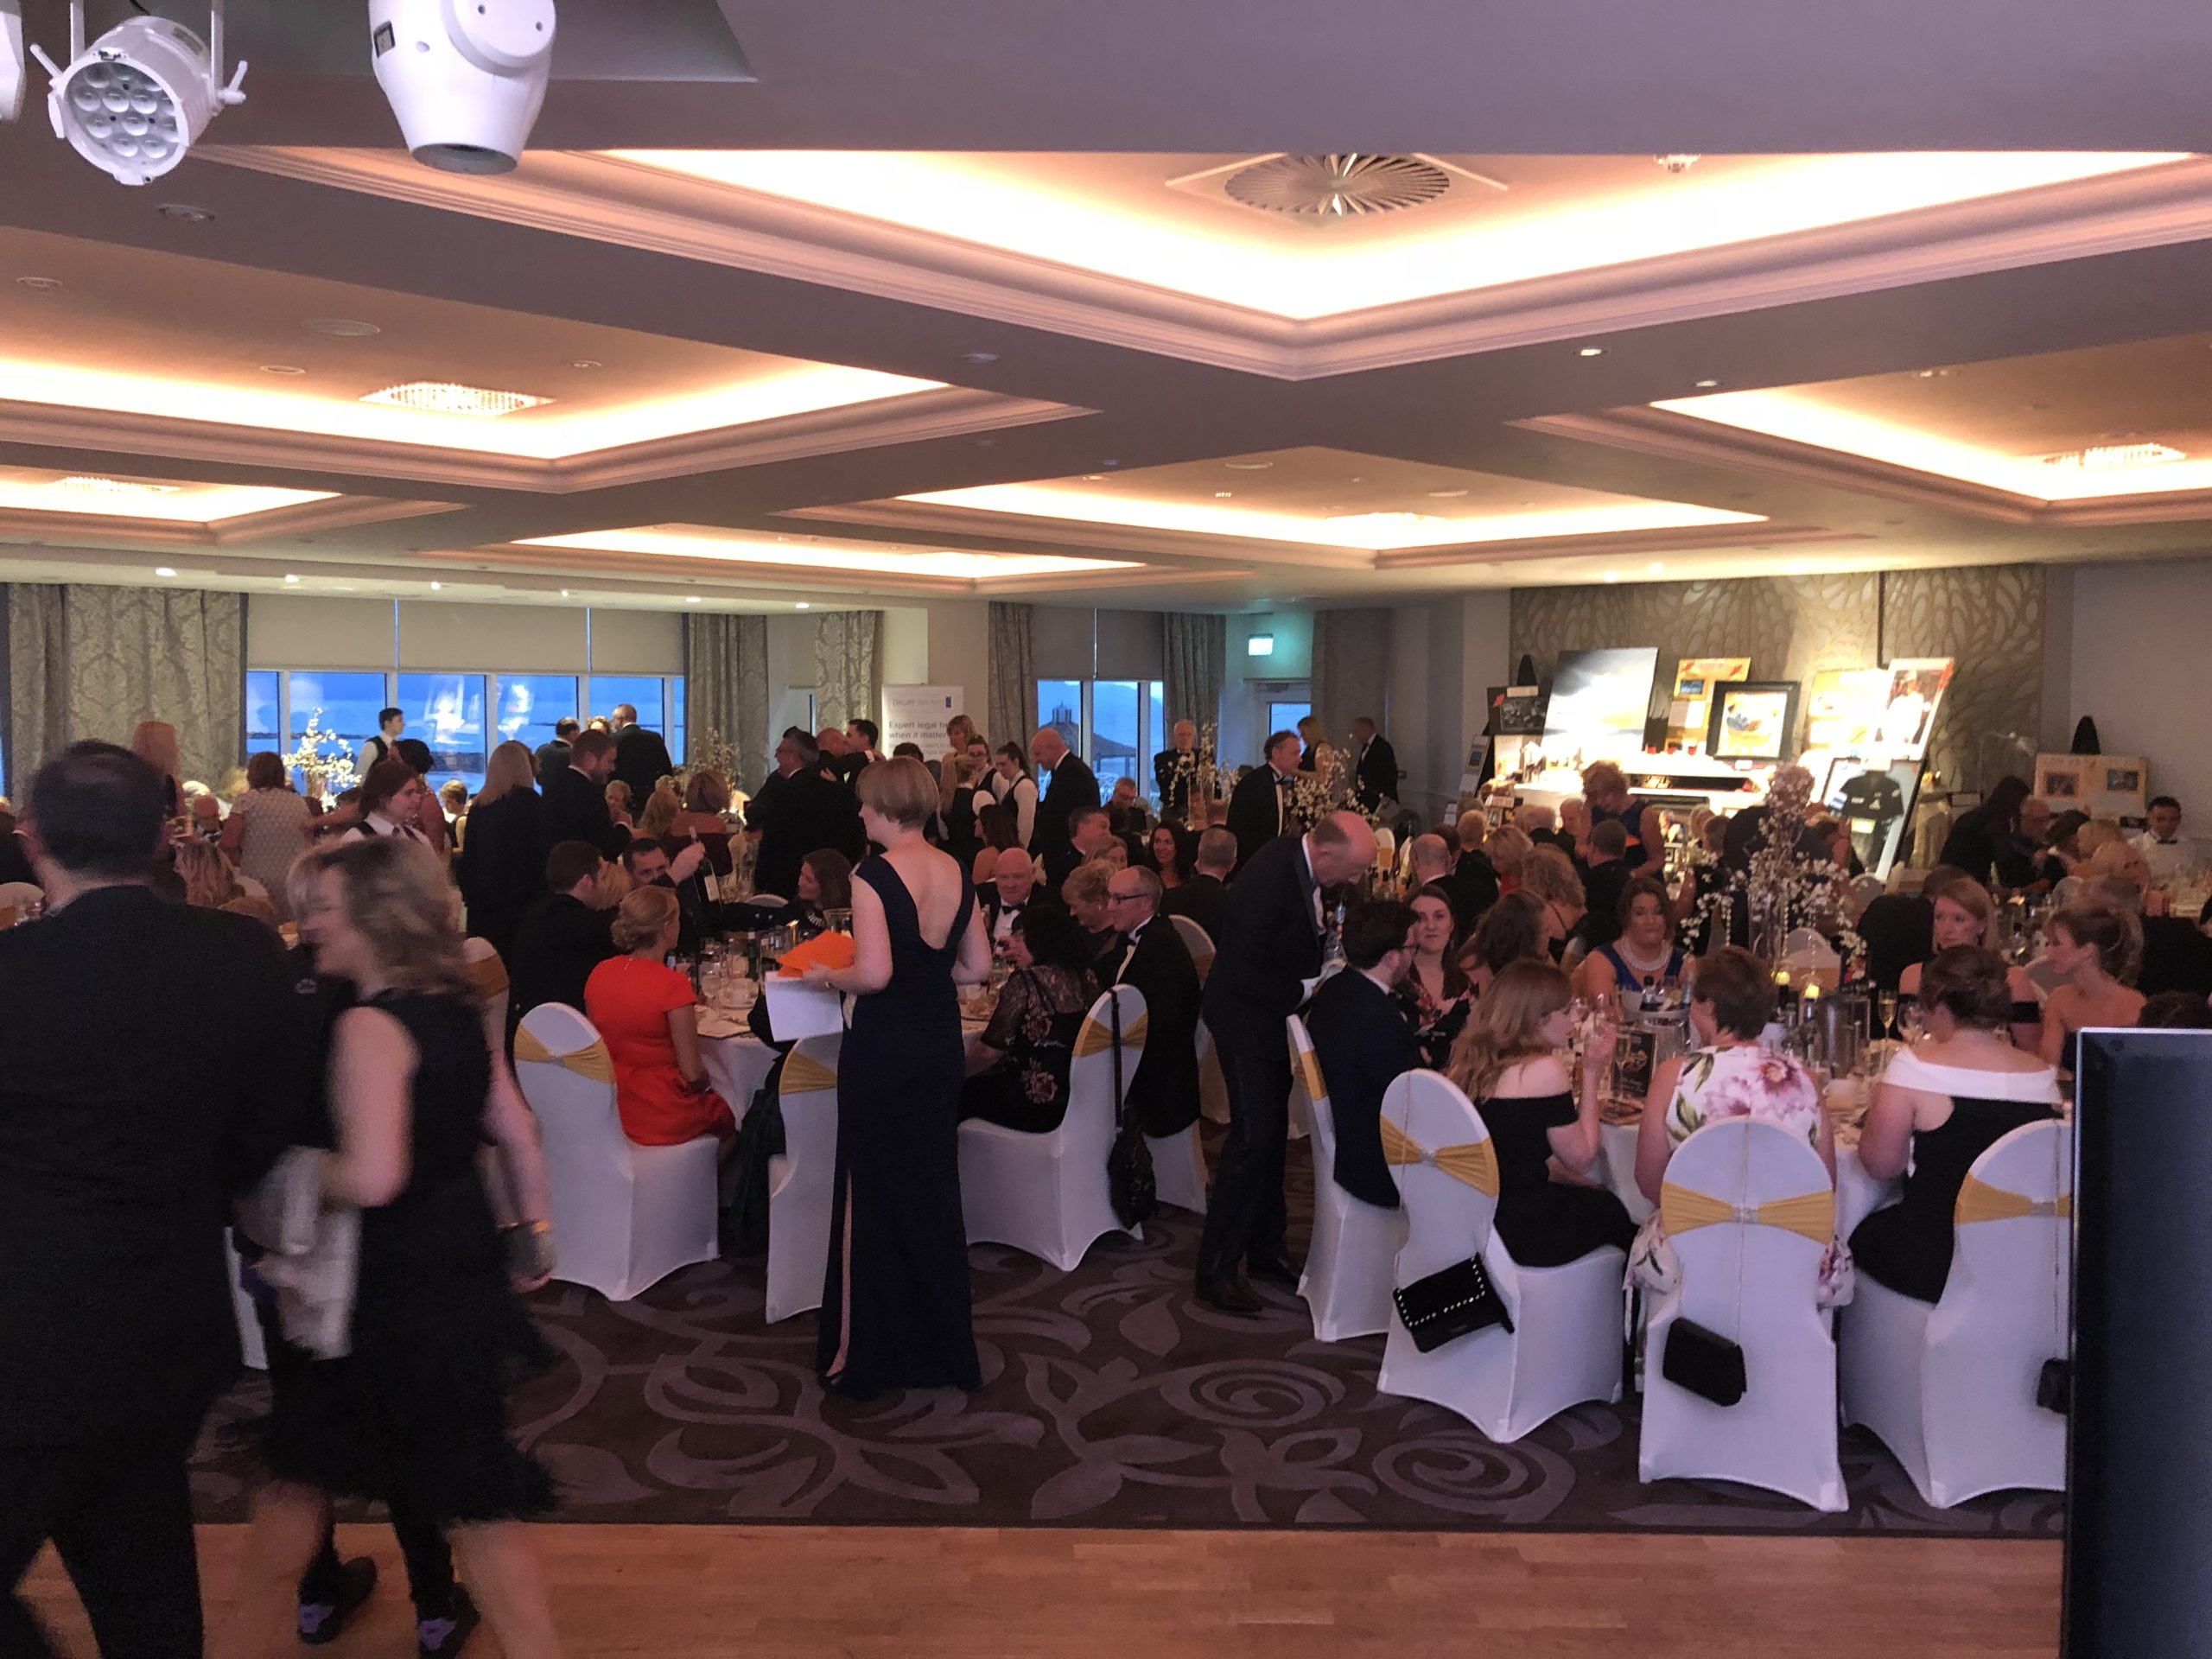 hospice ball the guests